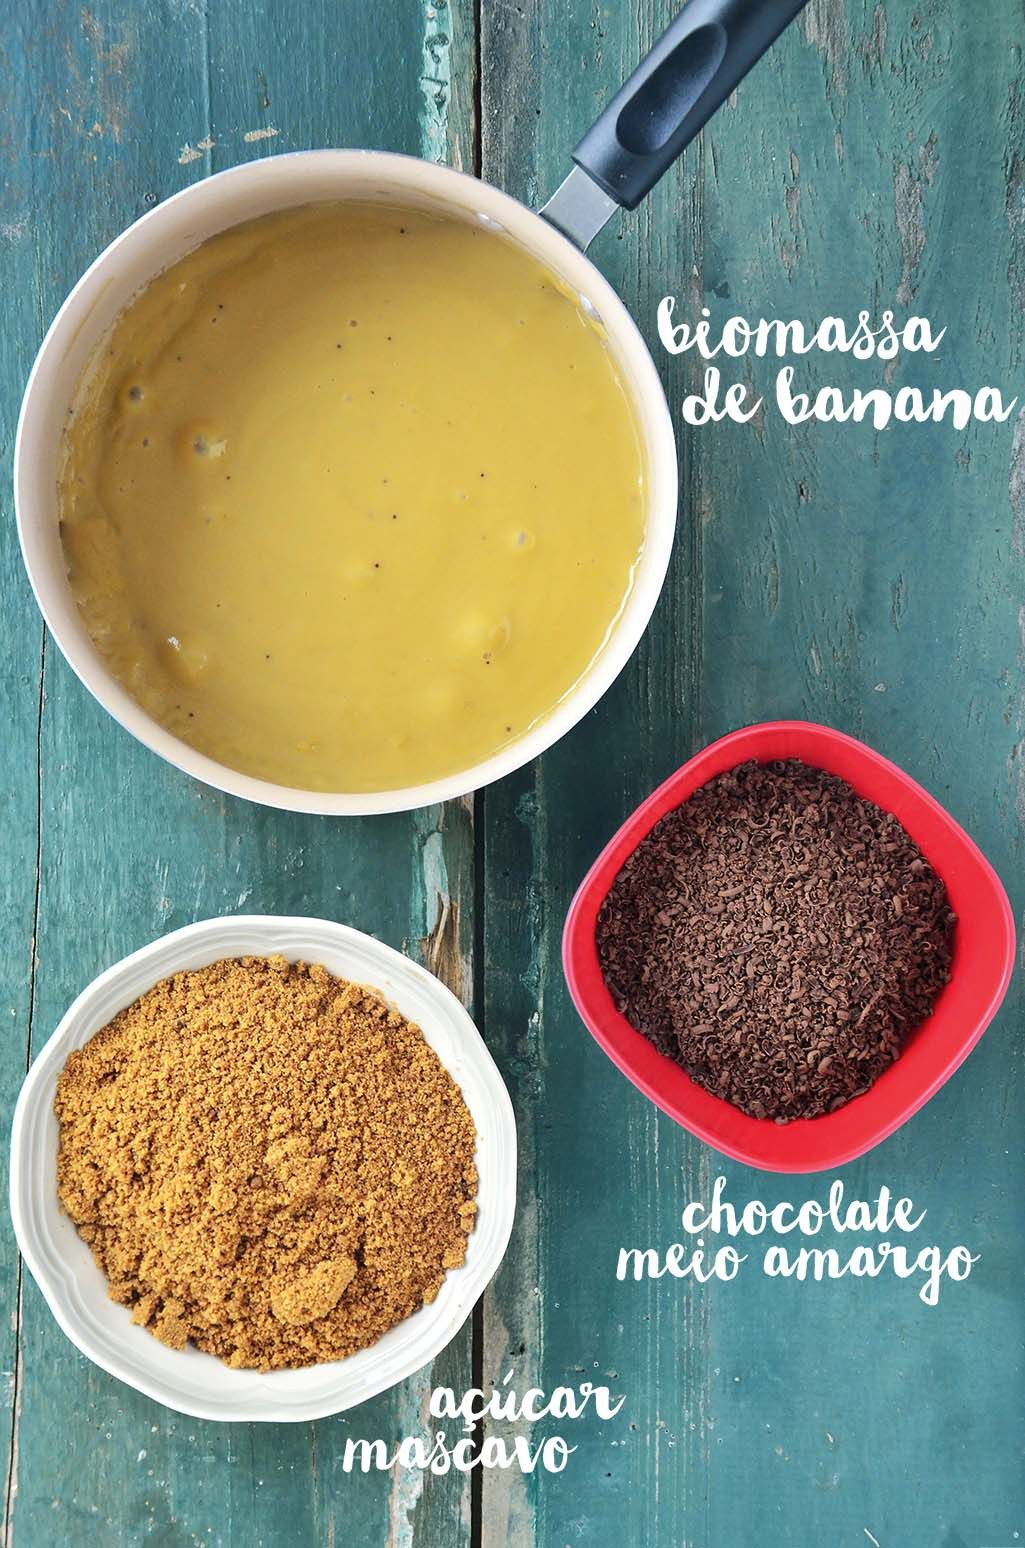 Ingredientes do mousse